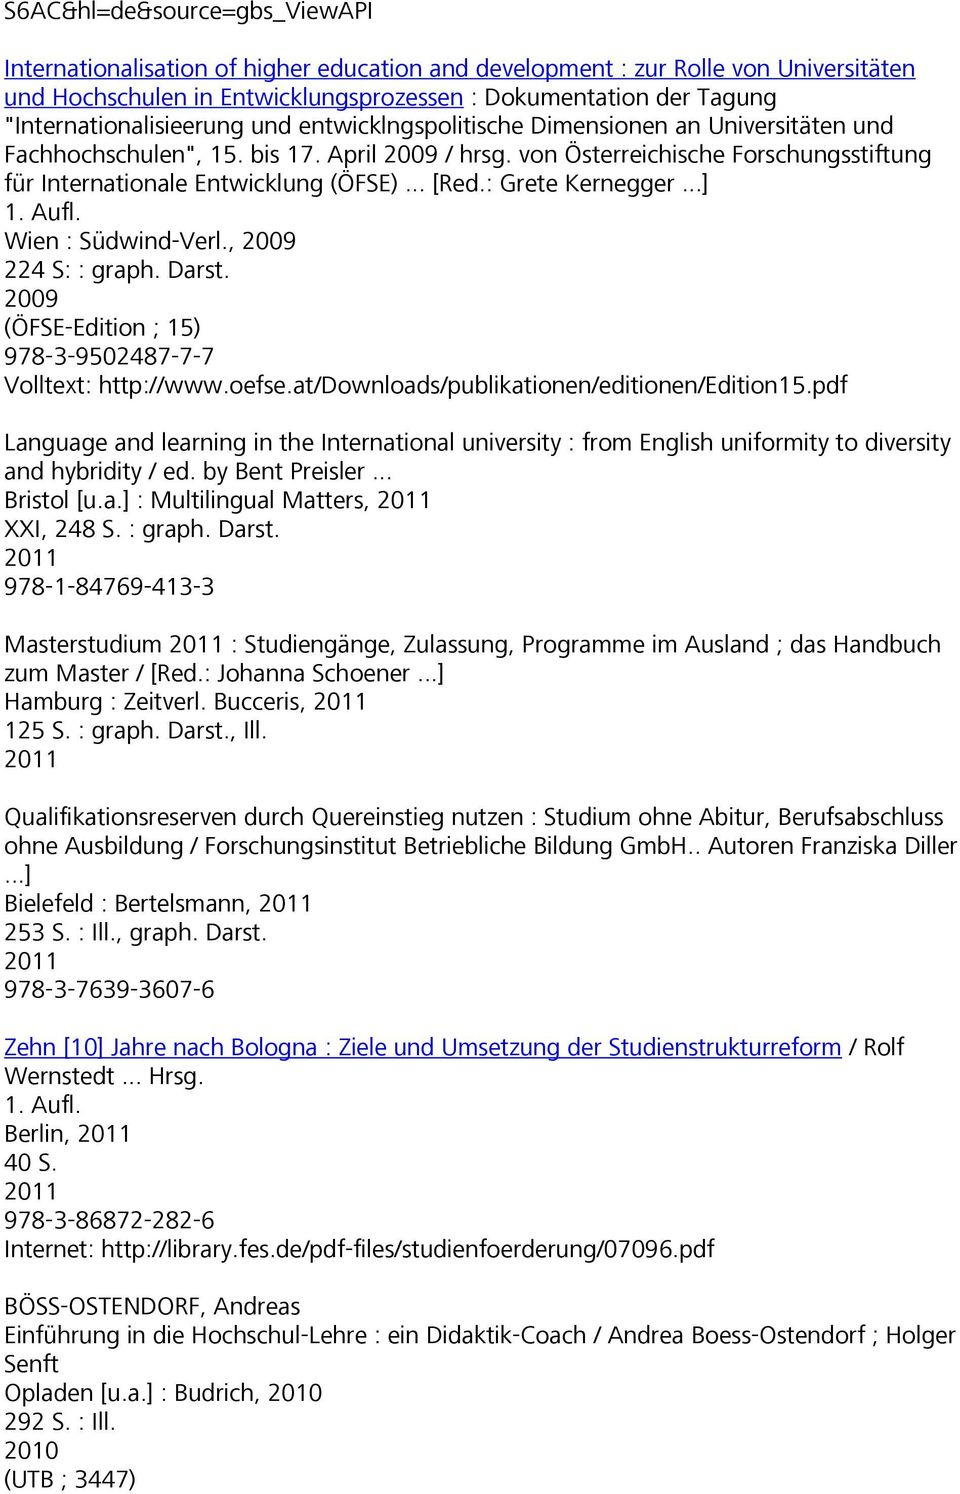 pdf Language and learning in the International university : from English uniformity to diversity and hybridity / ed. by Bent Preisler... Bristol [u.a.] : Multilingual Matters, XXI, 248 S. : graph.